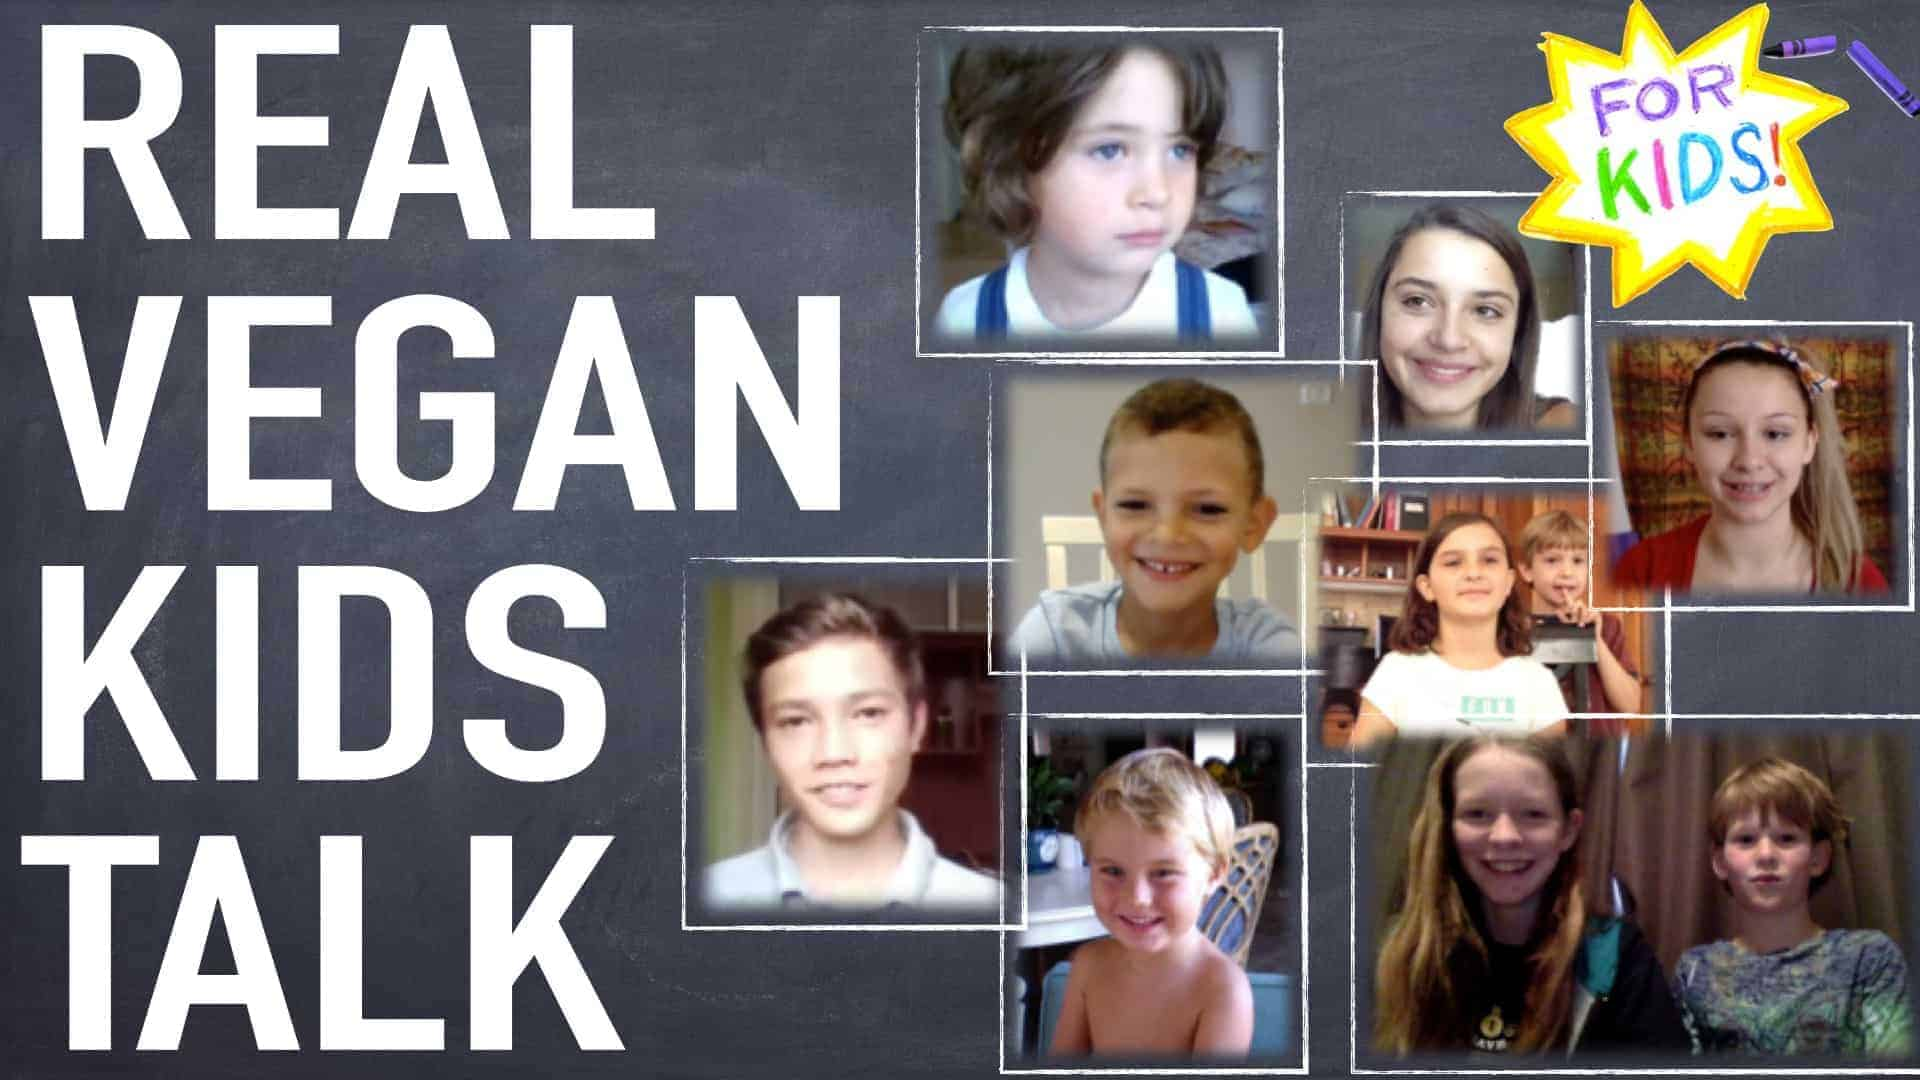 """A white and yellow star is shown in the top right-hand corner. The appearance is one rendered in crayon. Across the center of the star are the words """"For Kids"""". Below are a number of photographs of children. To the left in large white letters are the words: """"Real vegan kids talk""""."""